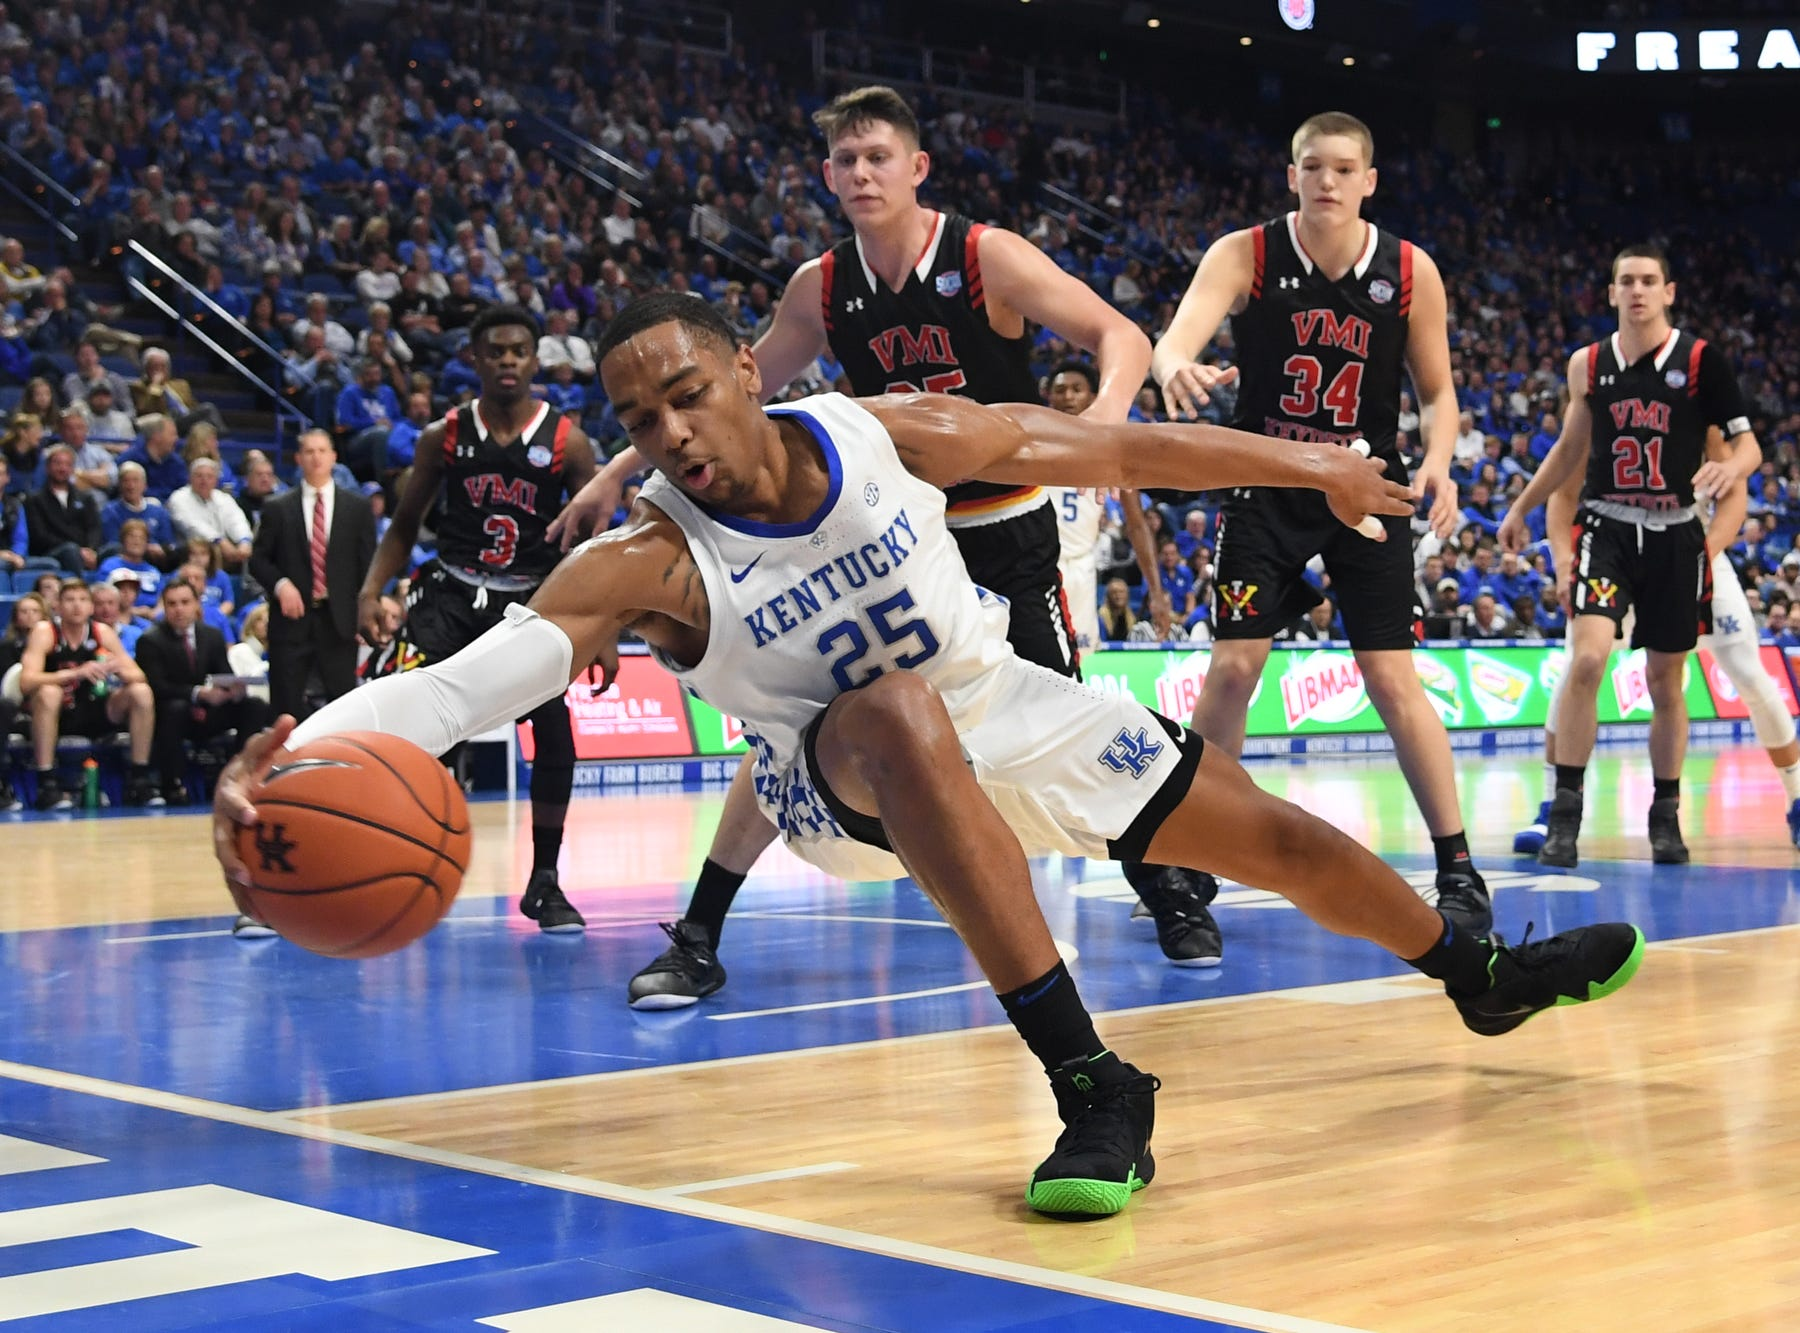 UK F PJ Washington saves the ball from going out of bounds during the University of Kentucky mens basketball game against VMI at Rupp Arena in Lexington, Kentucky on Sunday, November 18, 2018.